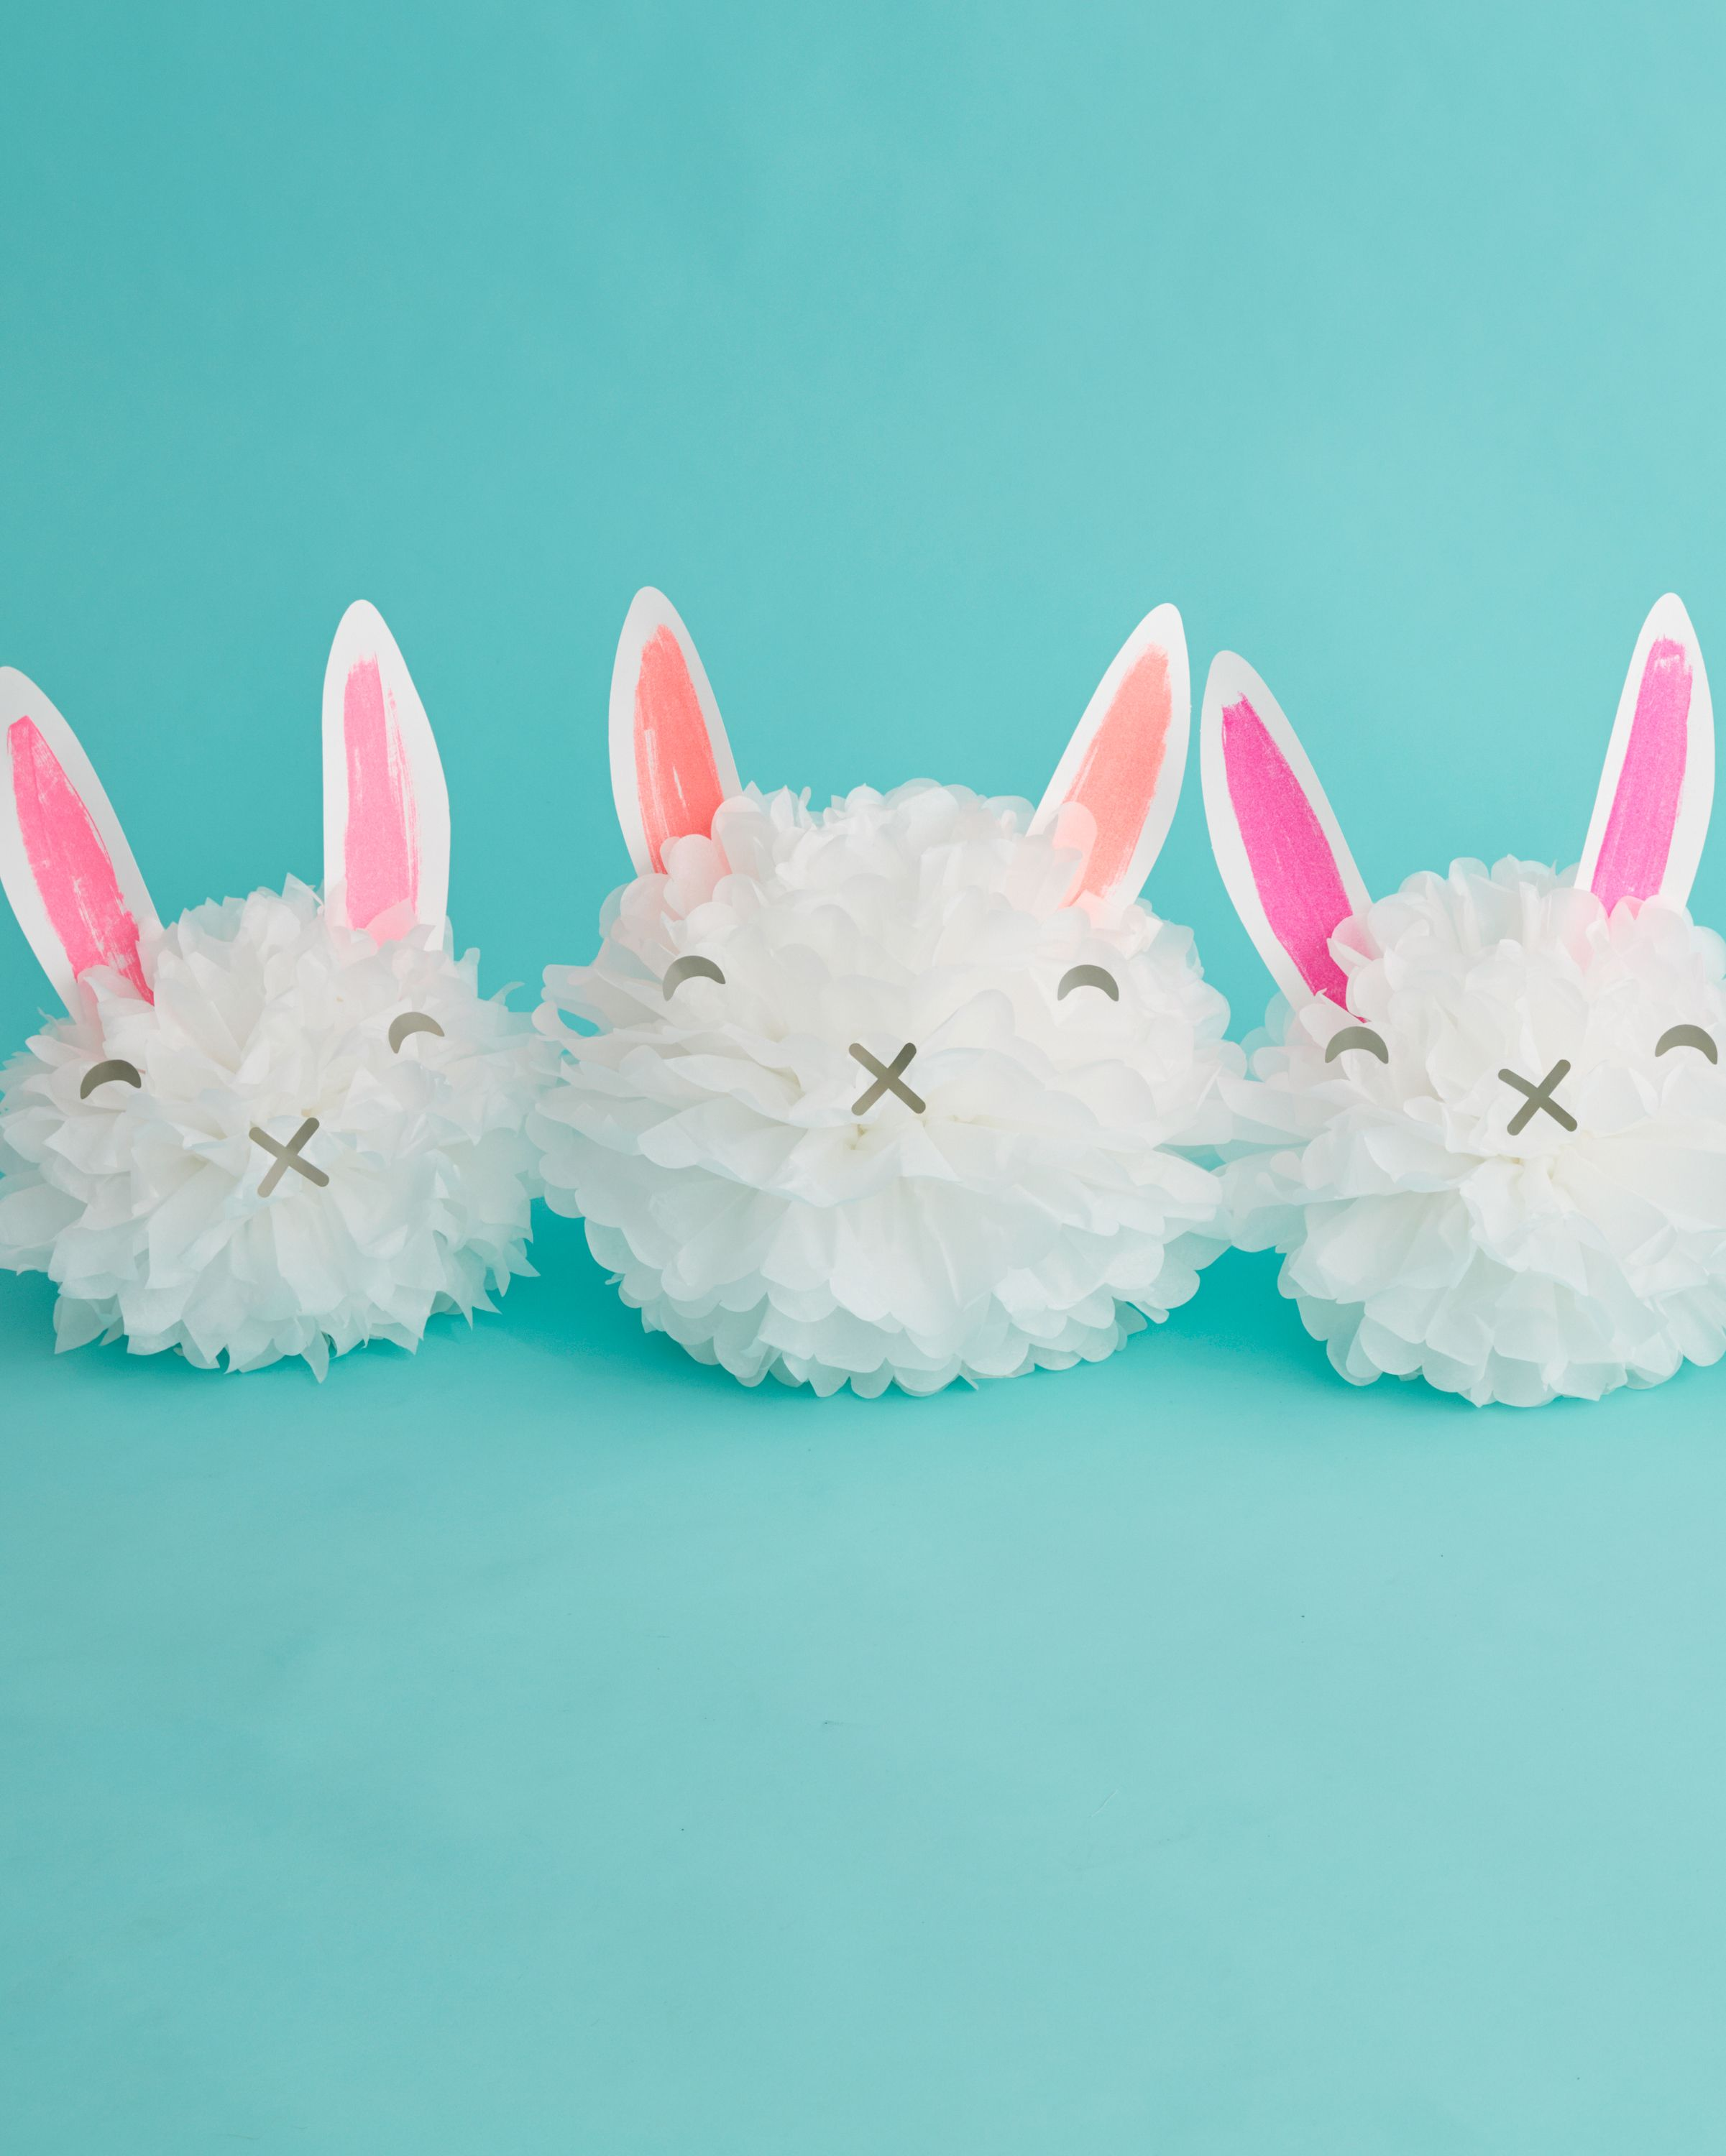 Craft this adorable Easter decor in minutes with neon glitter and pom-poms from Martha Stewart Crafts.